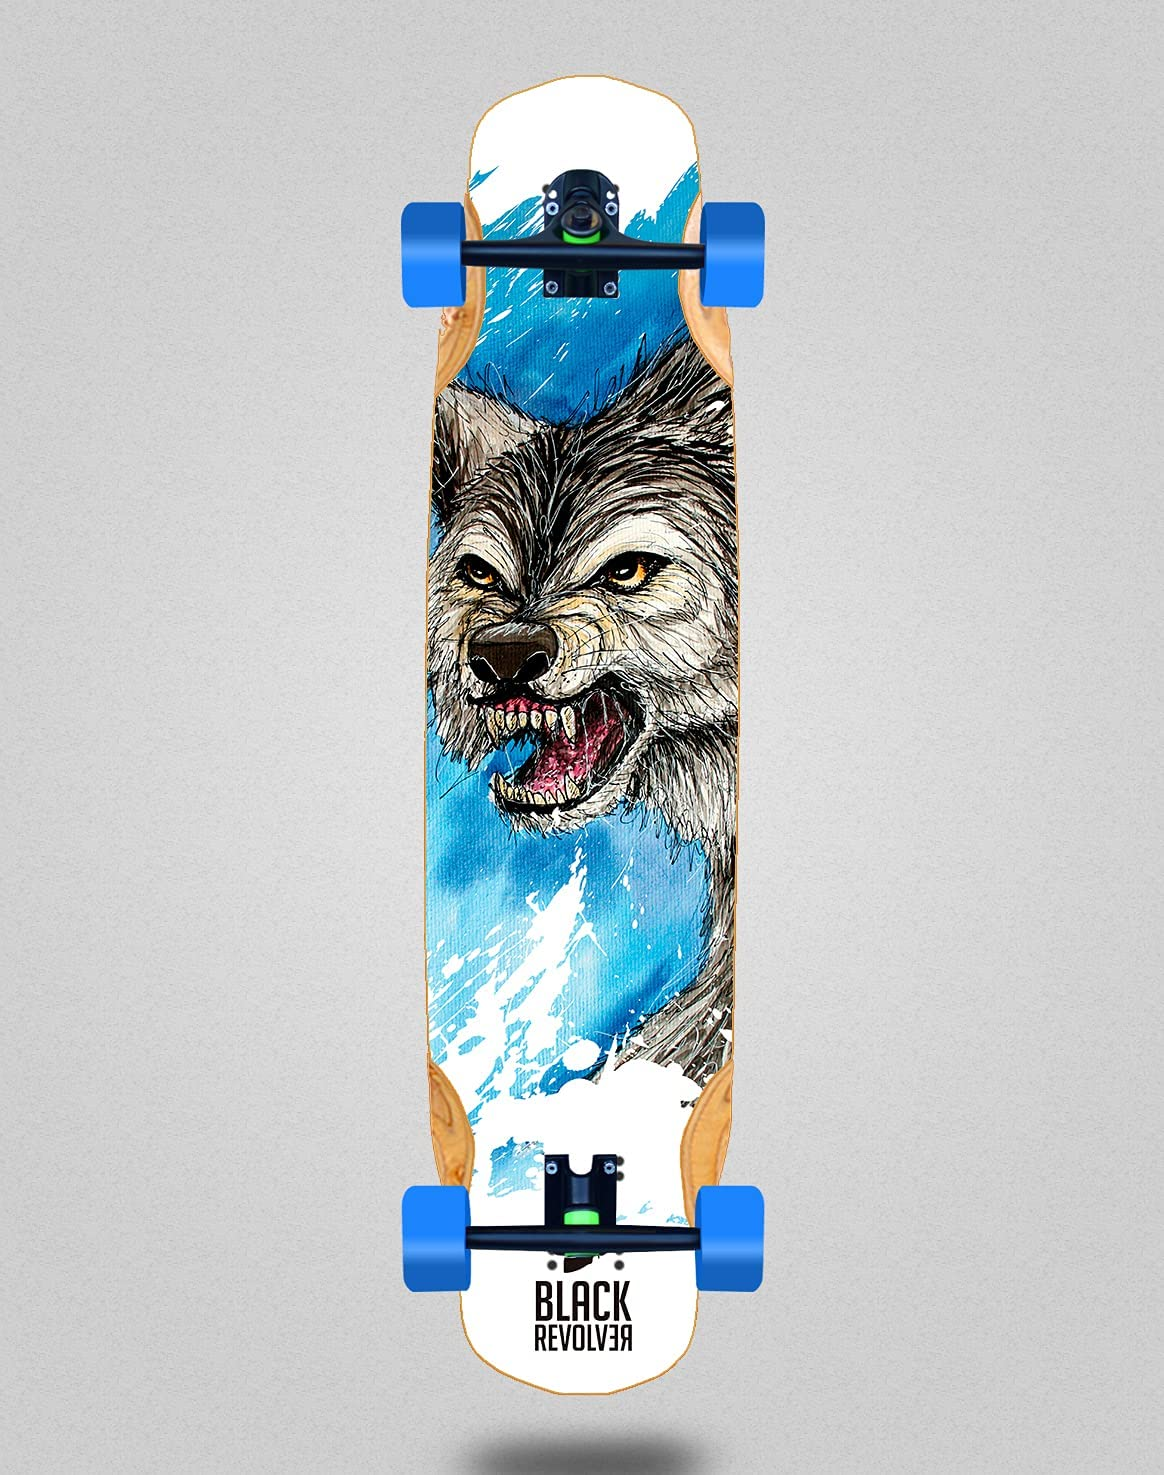 Black Revolver Skateboard Longboard Complete 38 Mix x discount Bamboo 8.4 lowest price